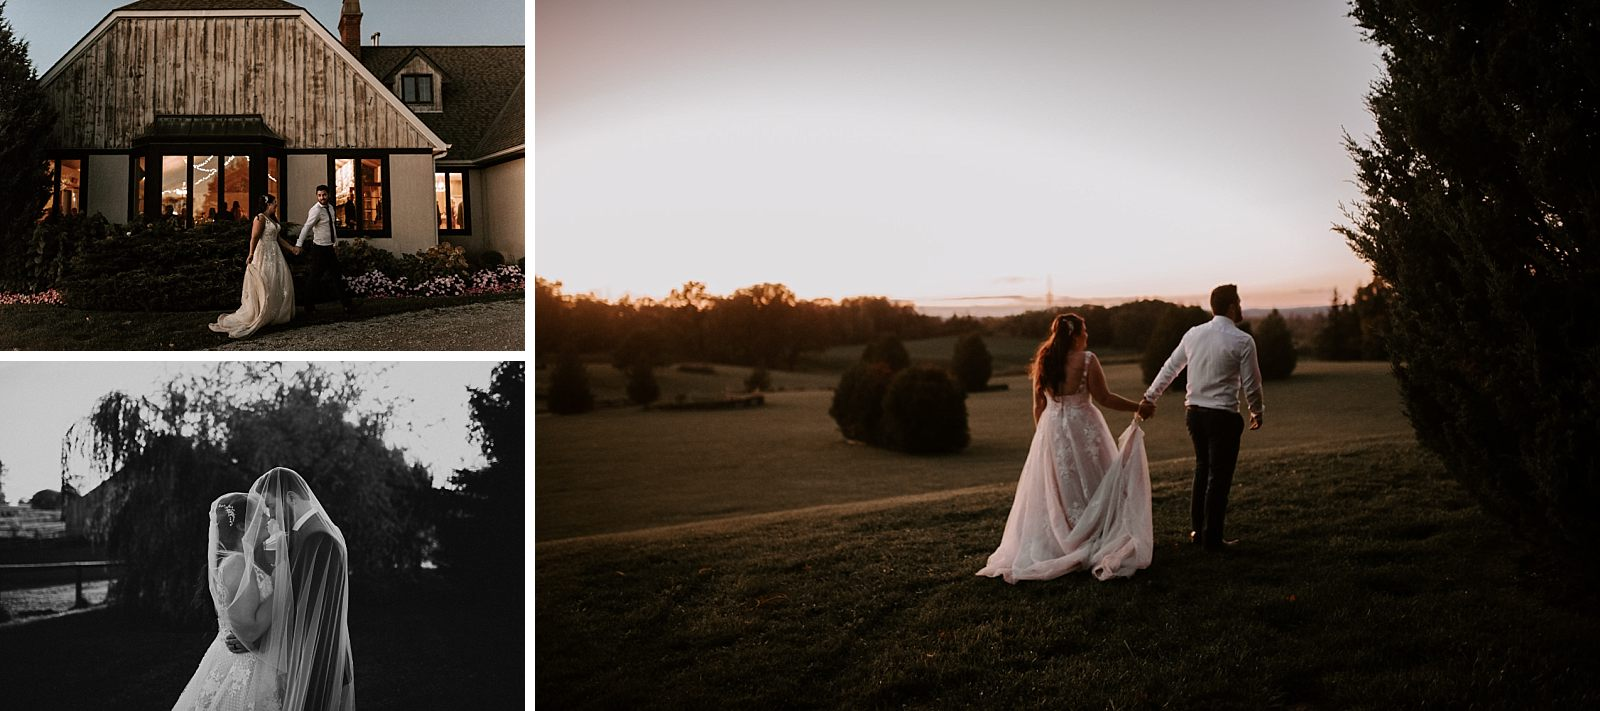 unique wedding bride and groom during sunset photos